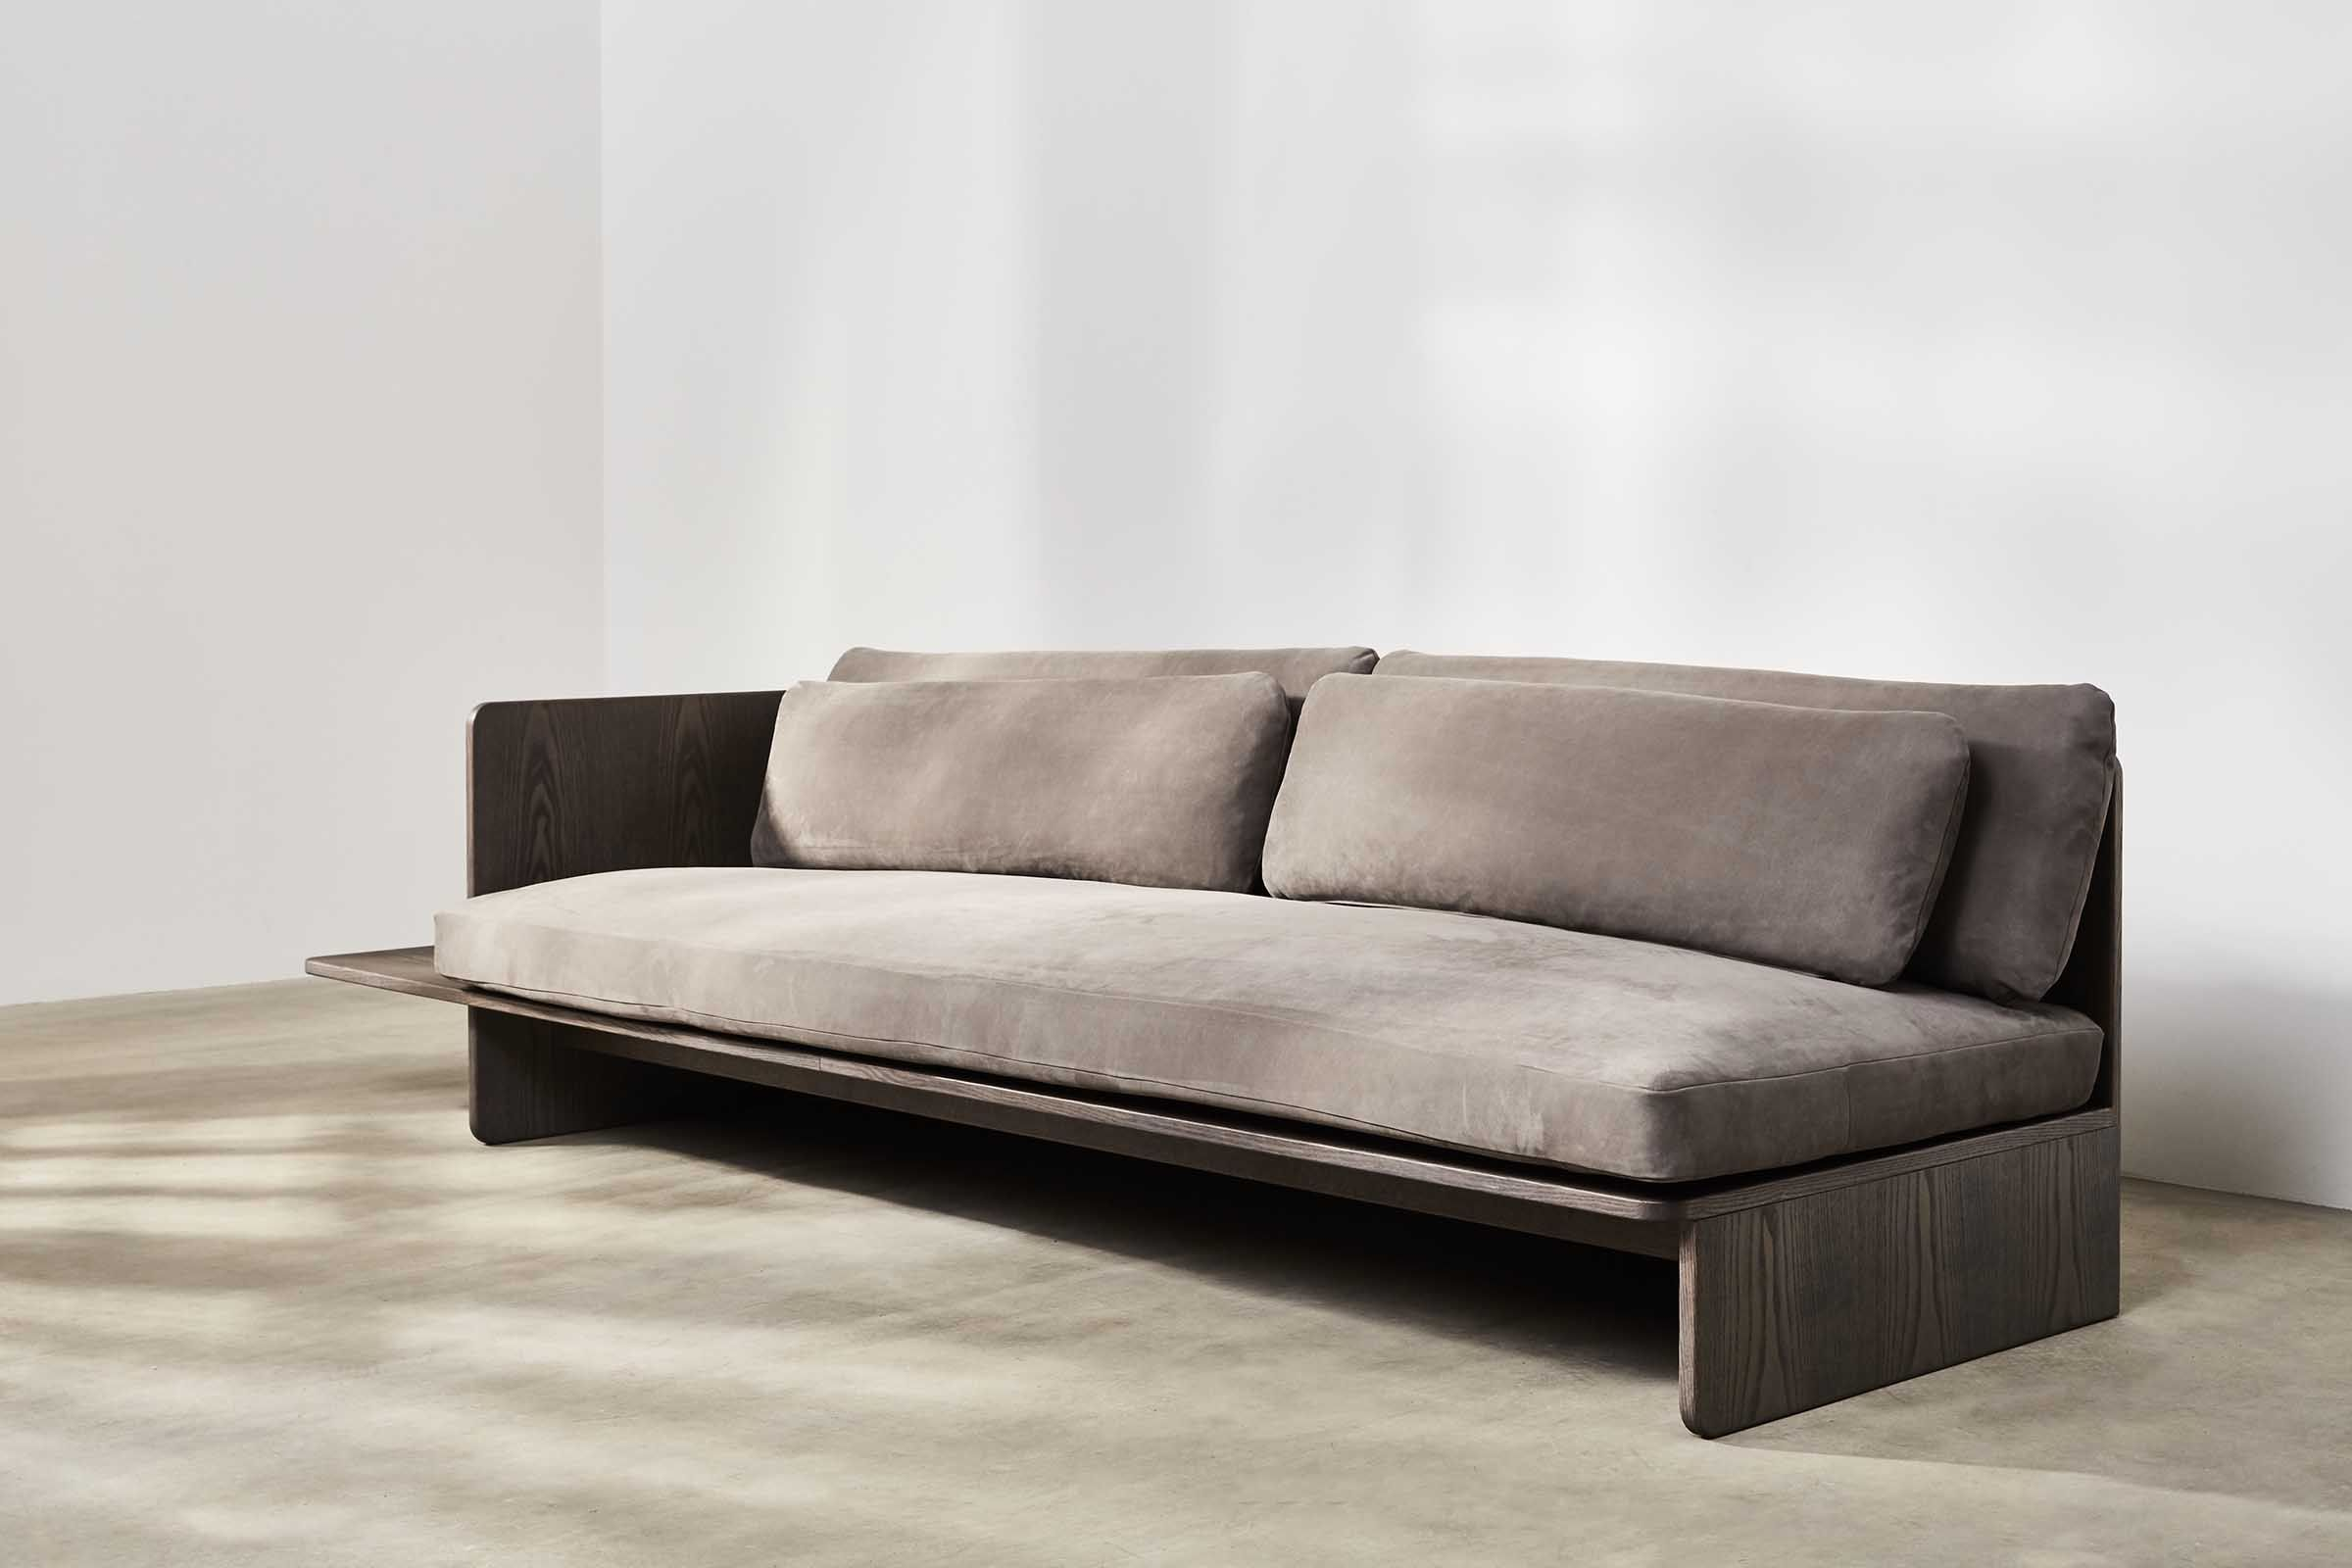 New Wellness Collection launching at 100 Design Sofa